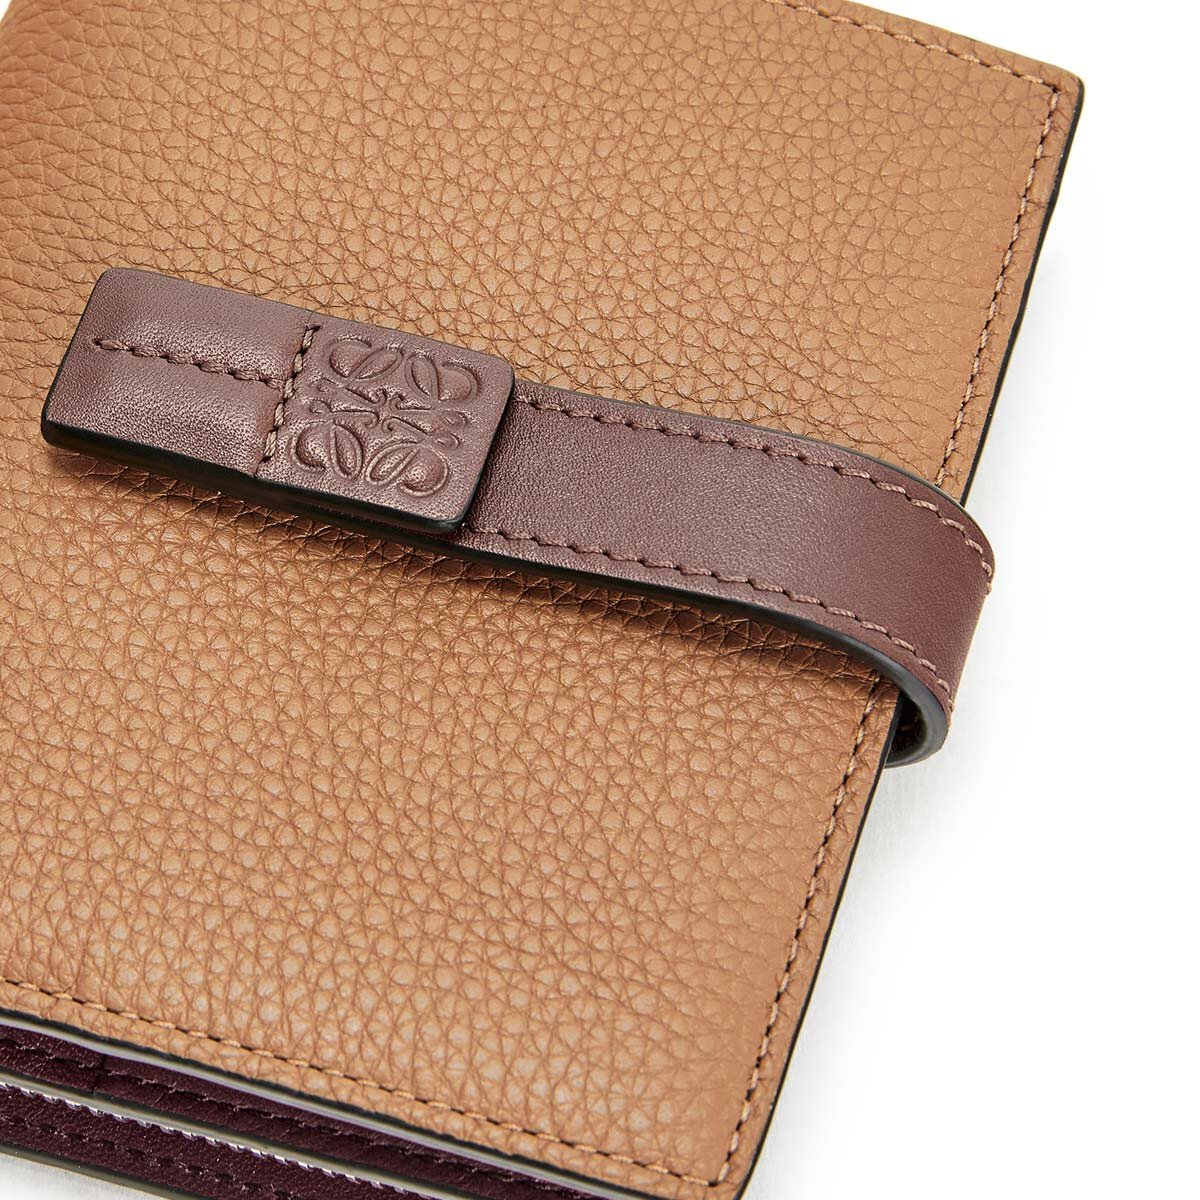 LOEWE Compact Zip Wallet Light Caramel/Pecan Color  front